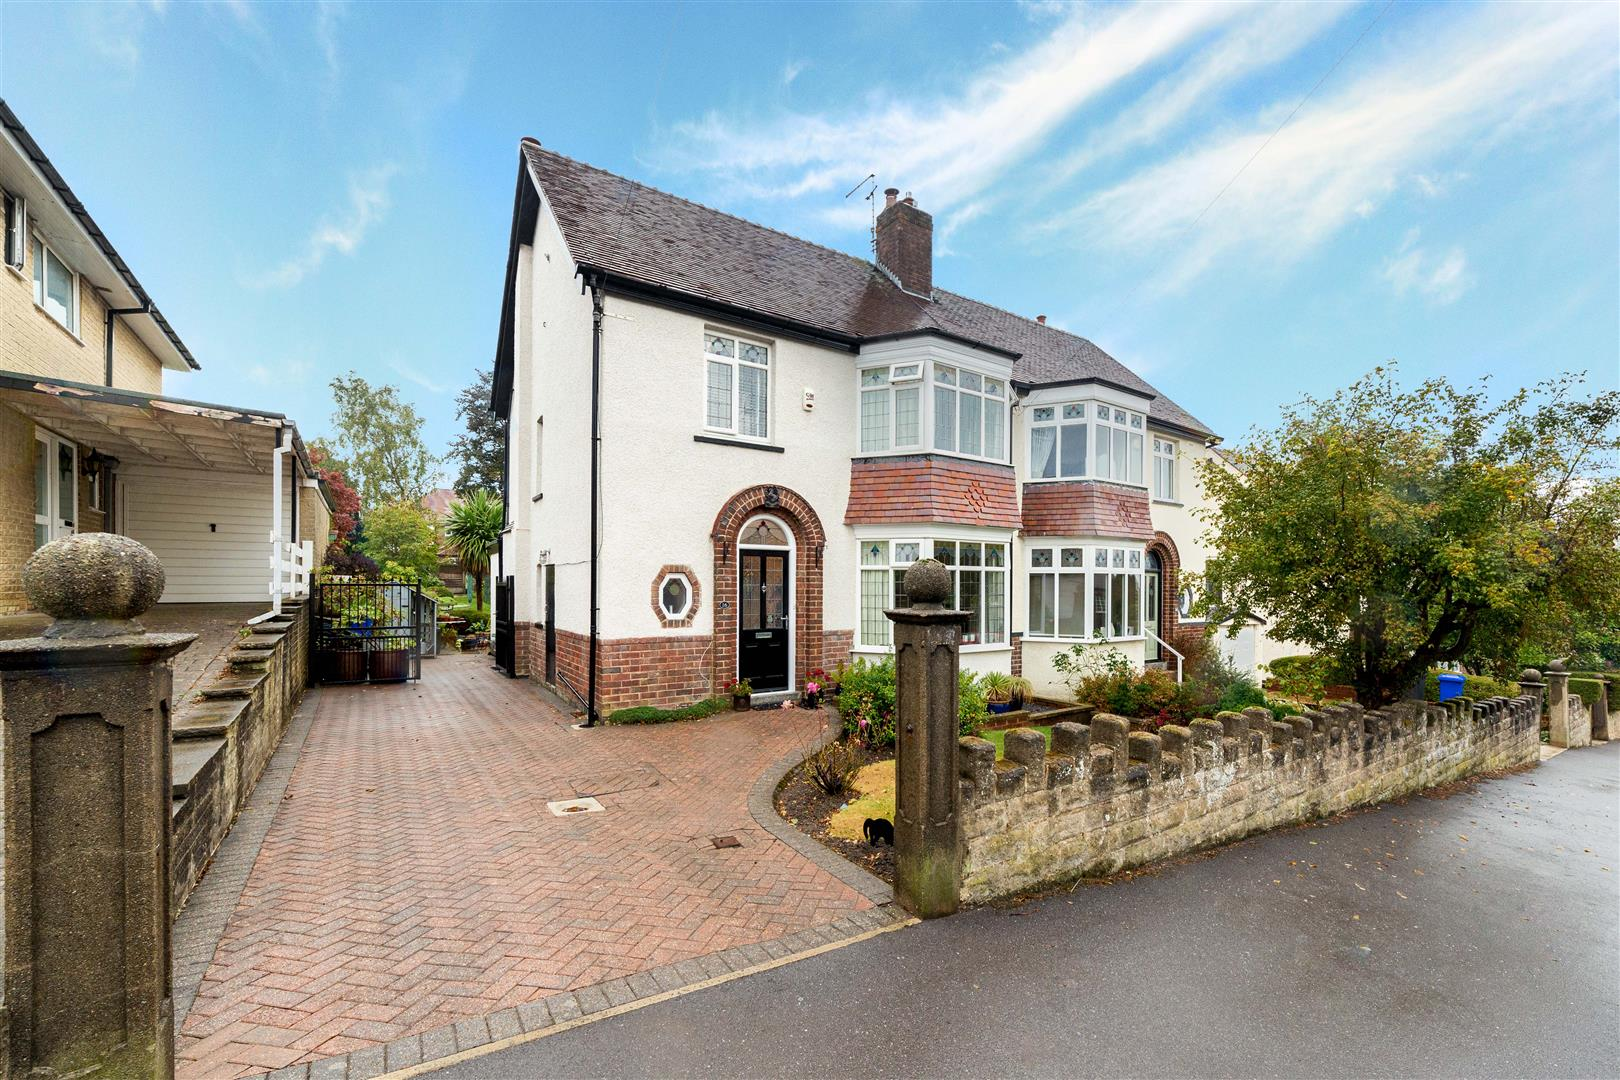 3 bed semi-detached house for sale in Sheffield, S11 9SP - Property Image 1